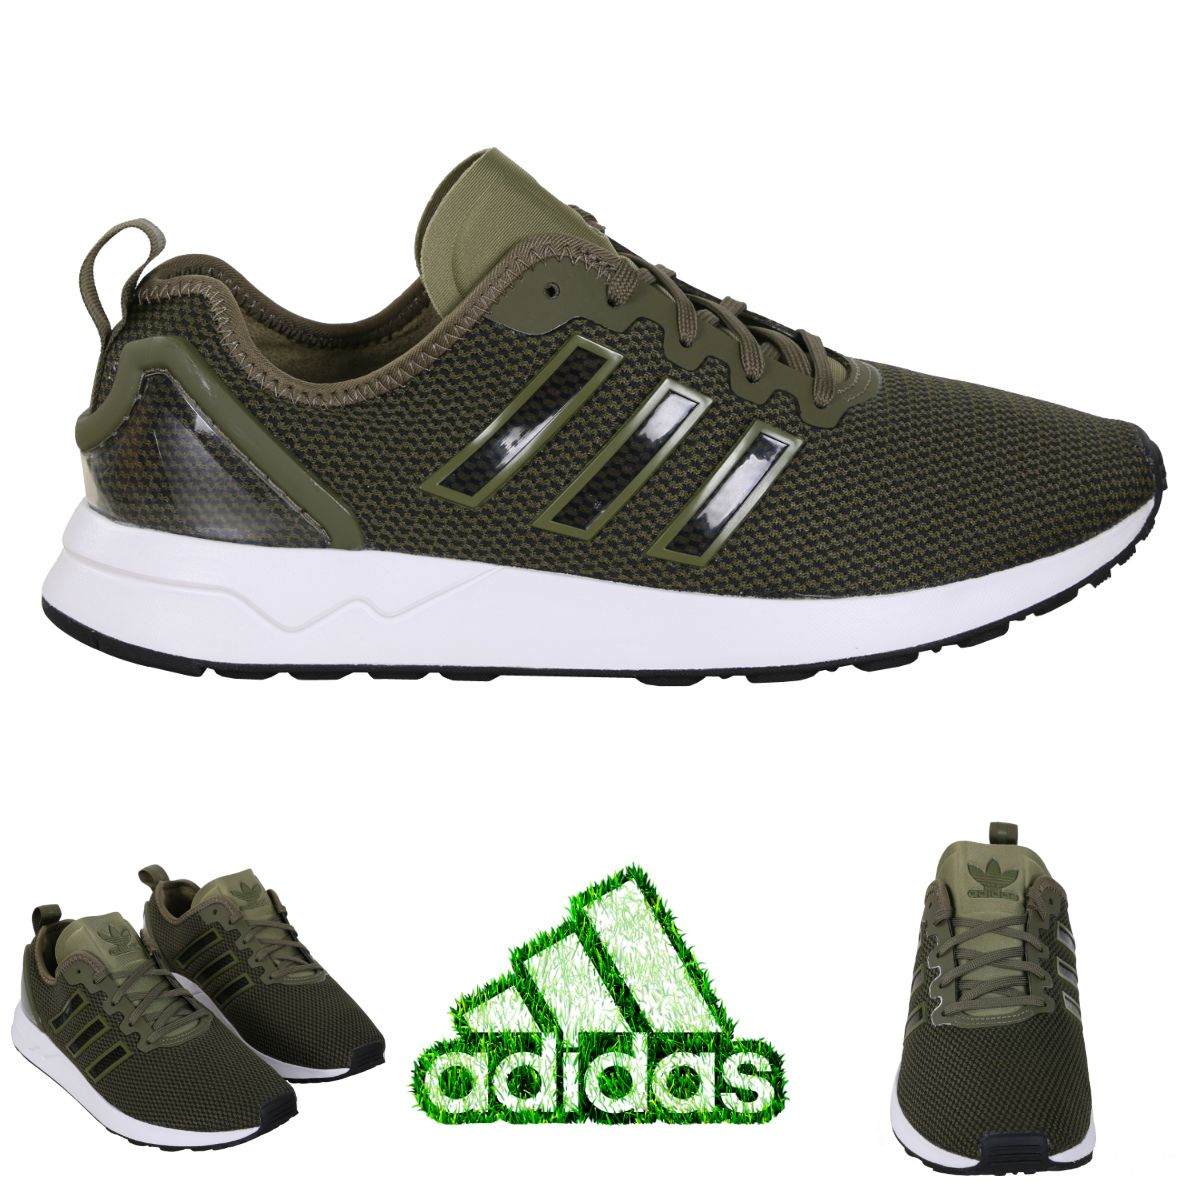 GO GREEN WITH ADIDAS ORIGINALS Adidas Shoes Zx Flux Adv Low Sneaker olive &  white ◼